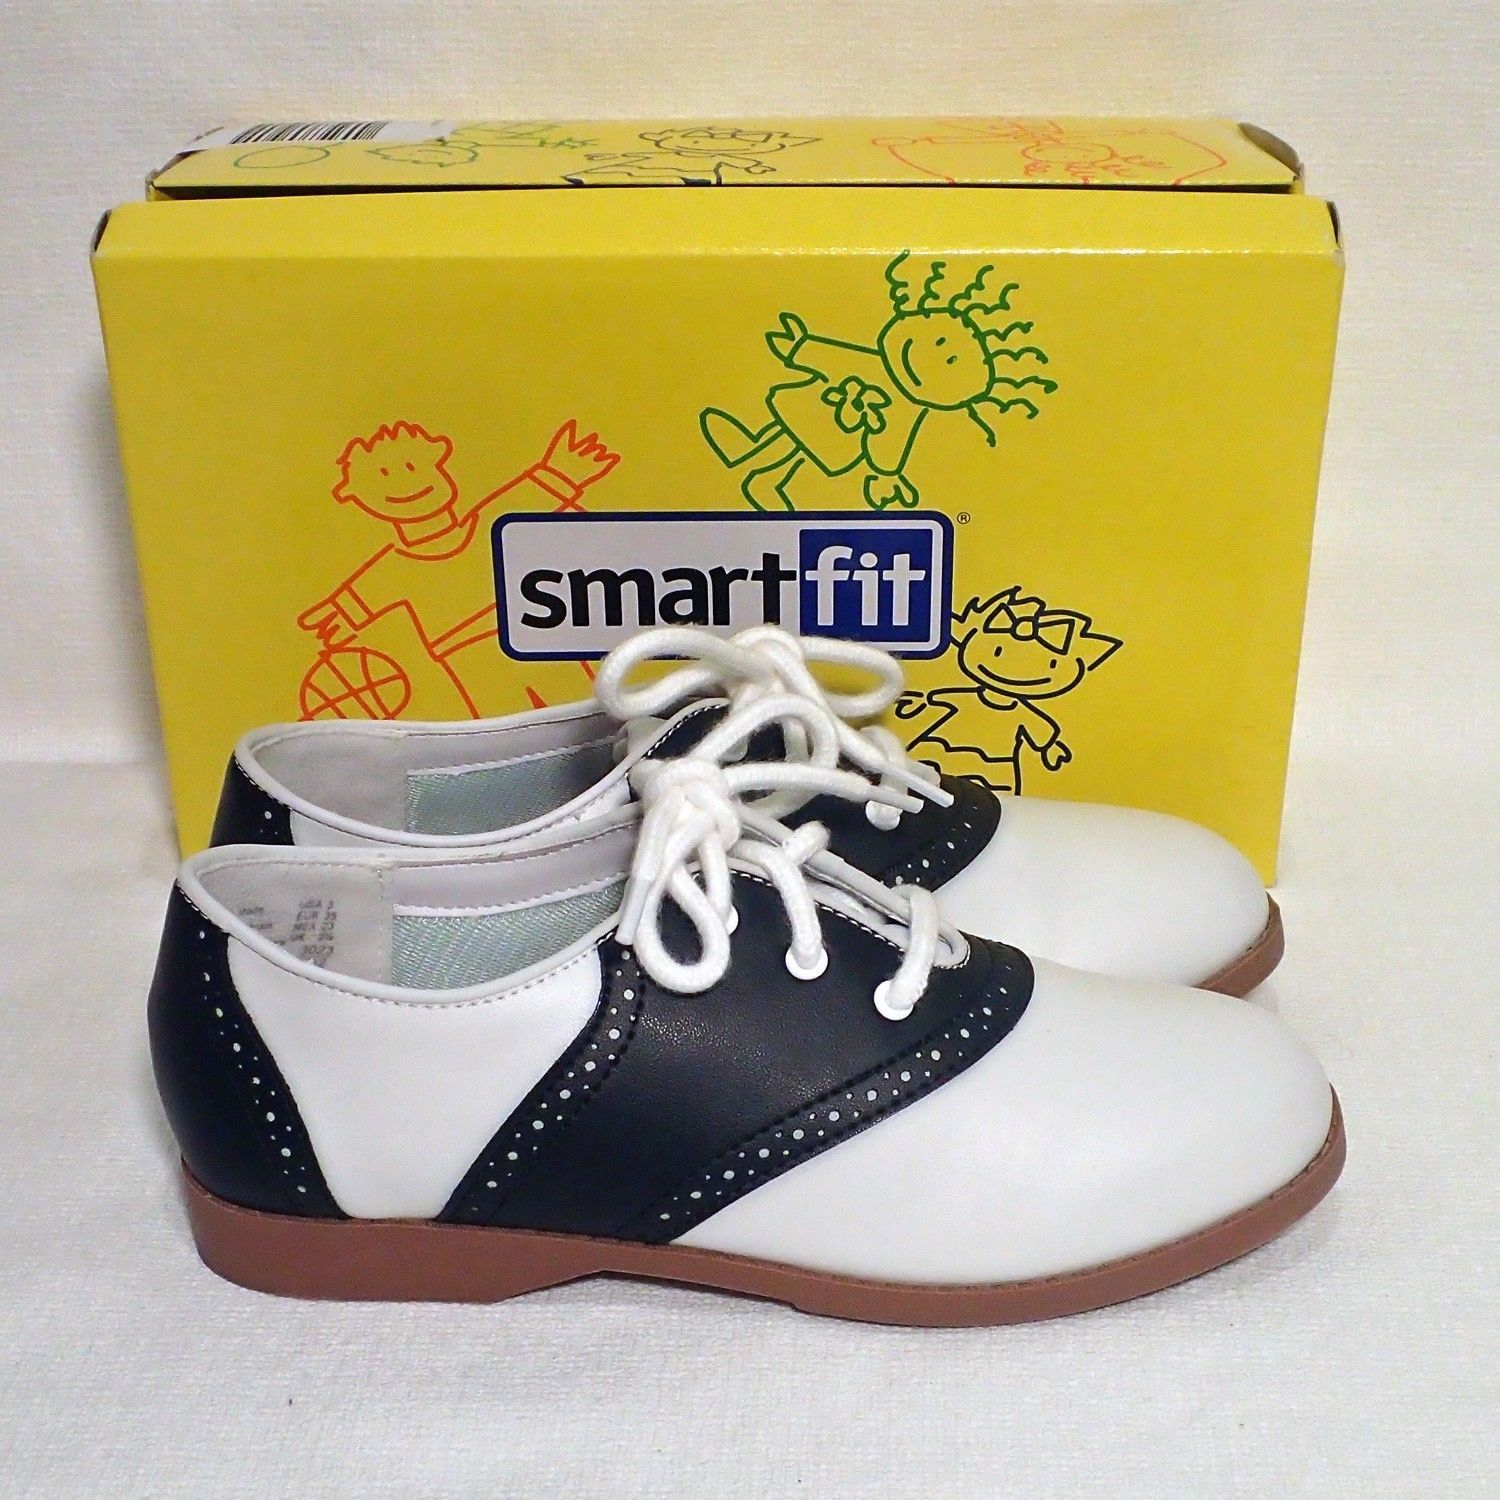 d87ae681a14 Details about GIRLS 50 S STYLE BLACK AND WHITE SADDLE SHOES SIZES 11 ...